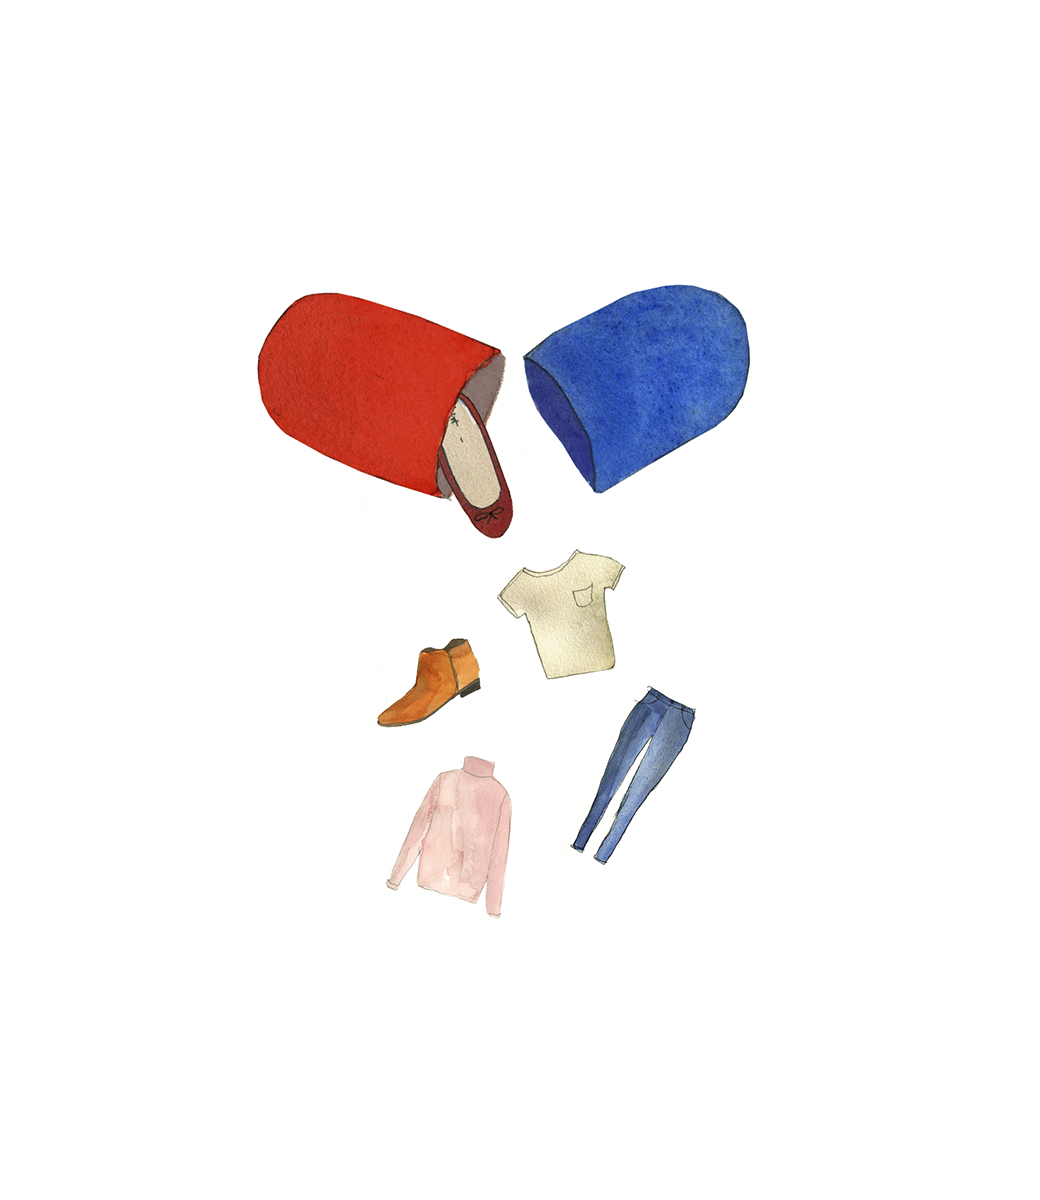 Illustration: Capsule full of clothes and shoes